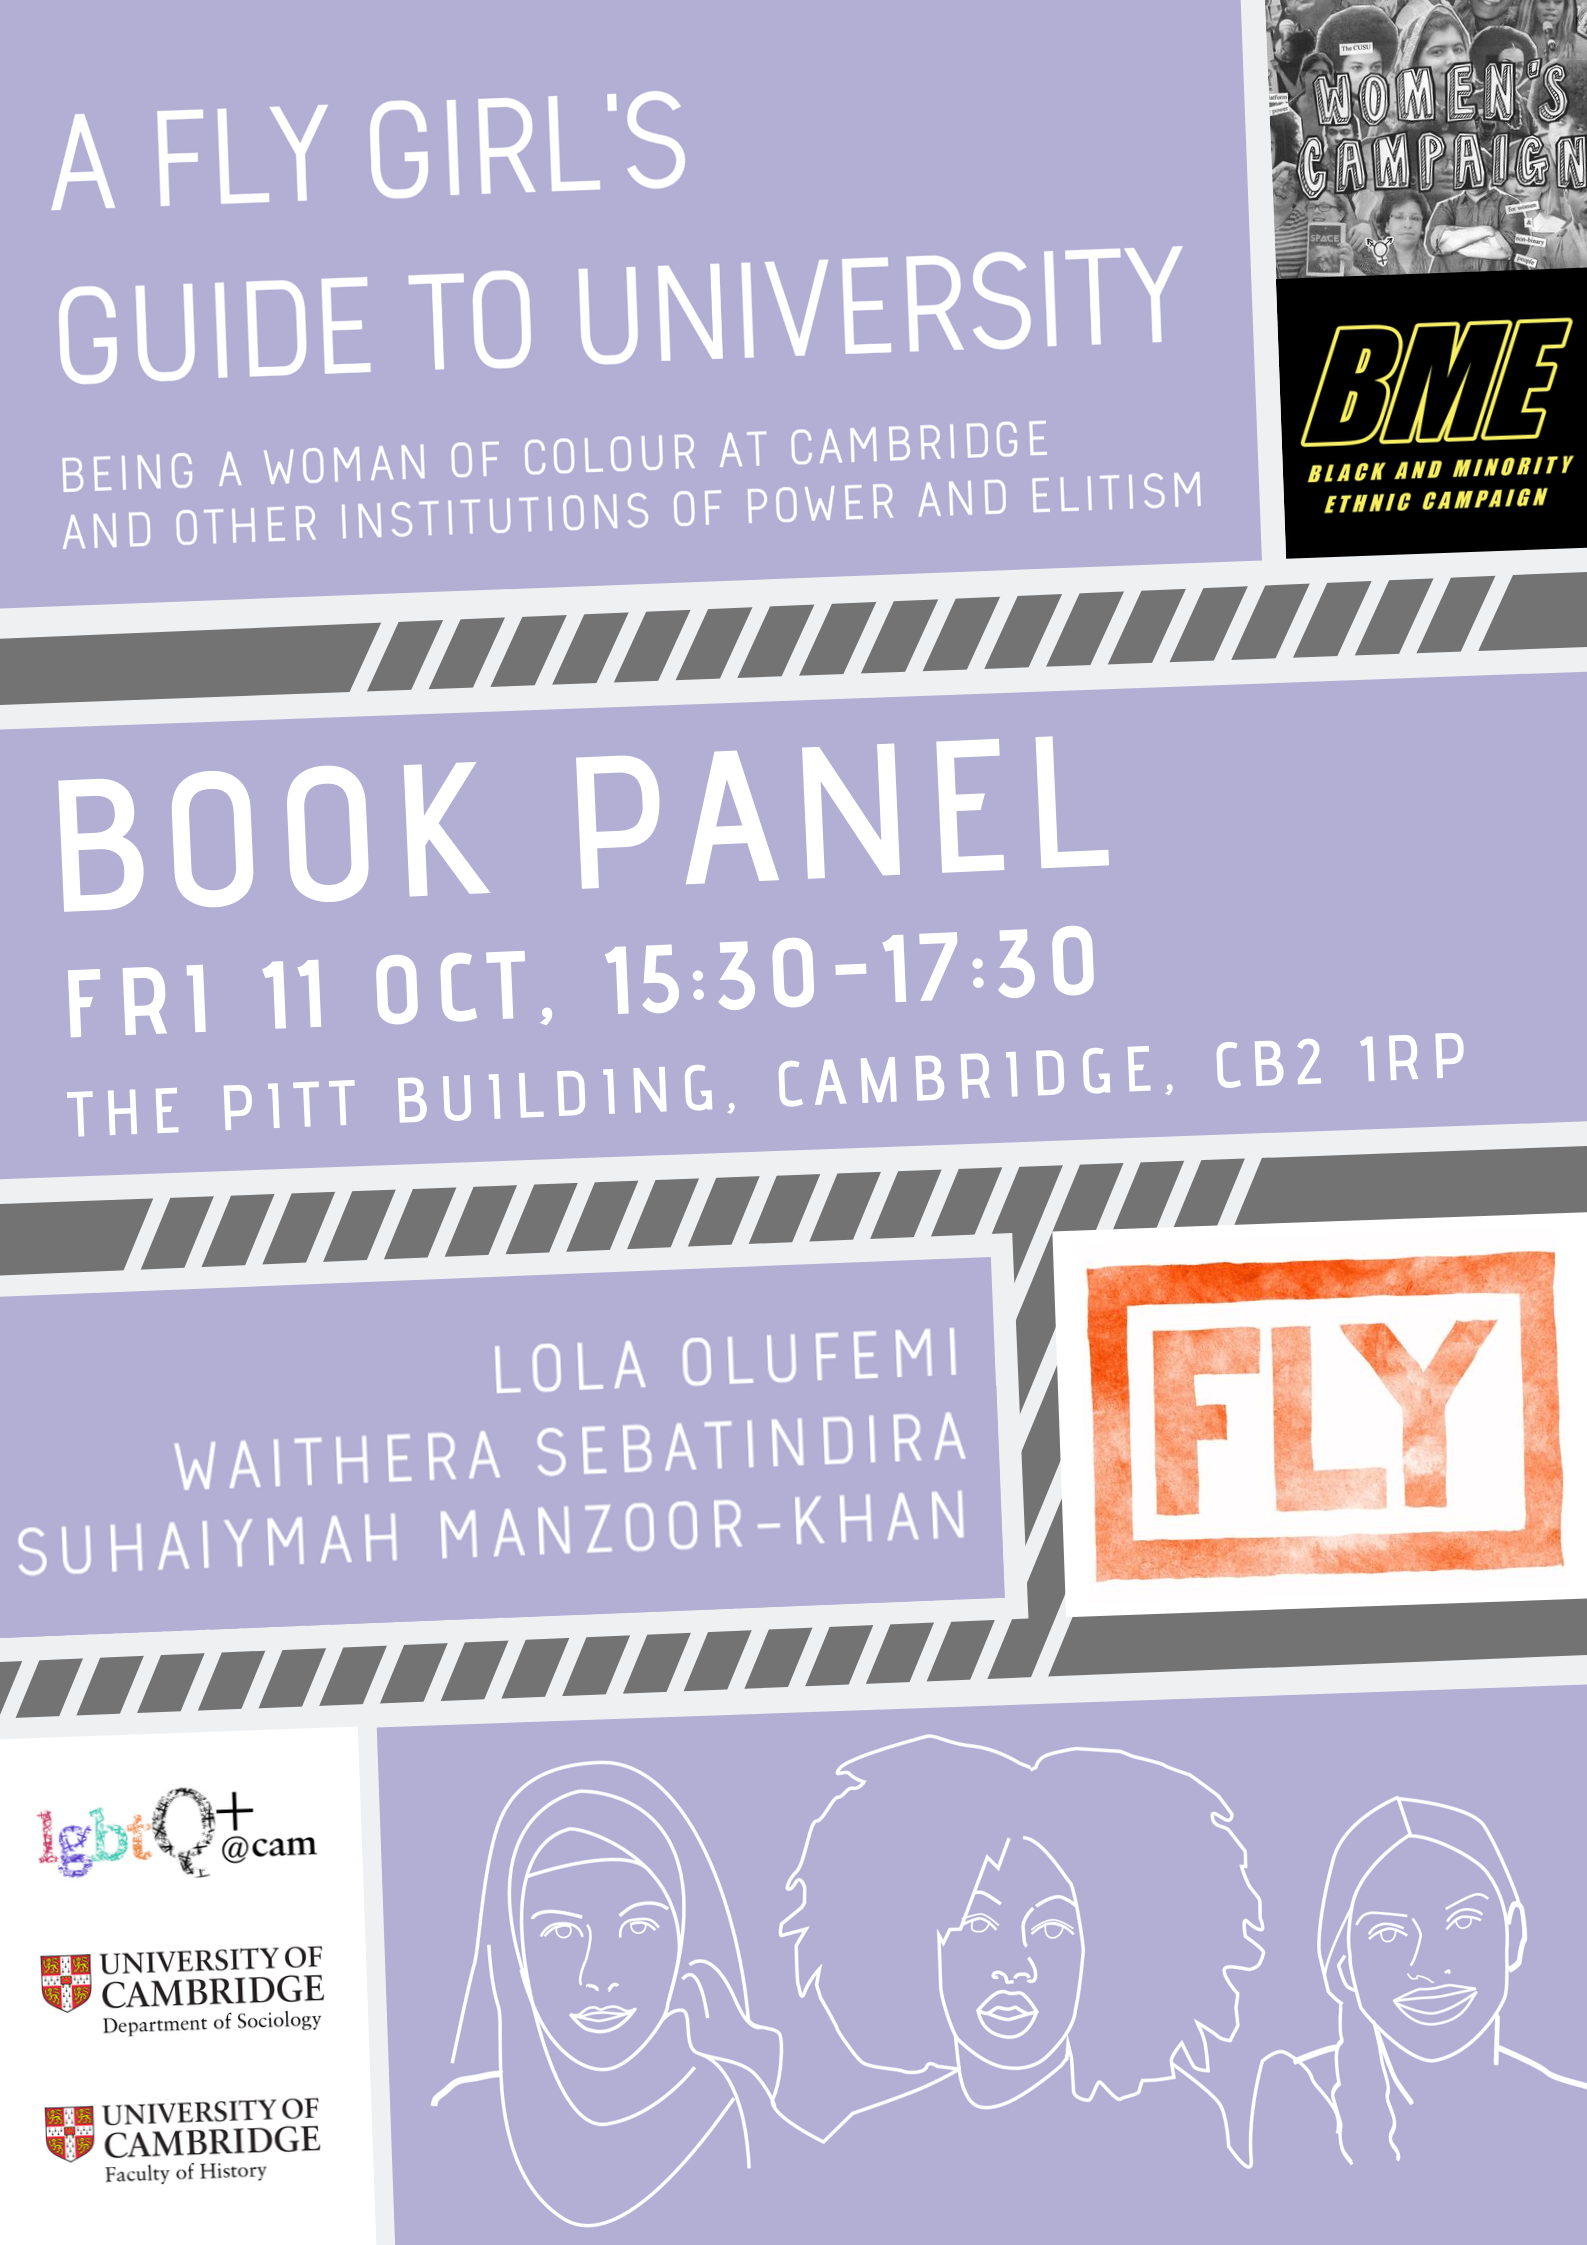 FLY Girls Guide to University